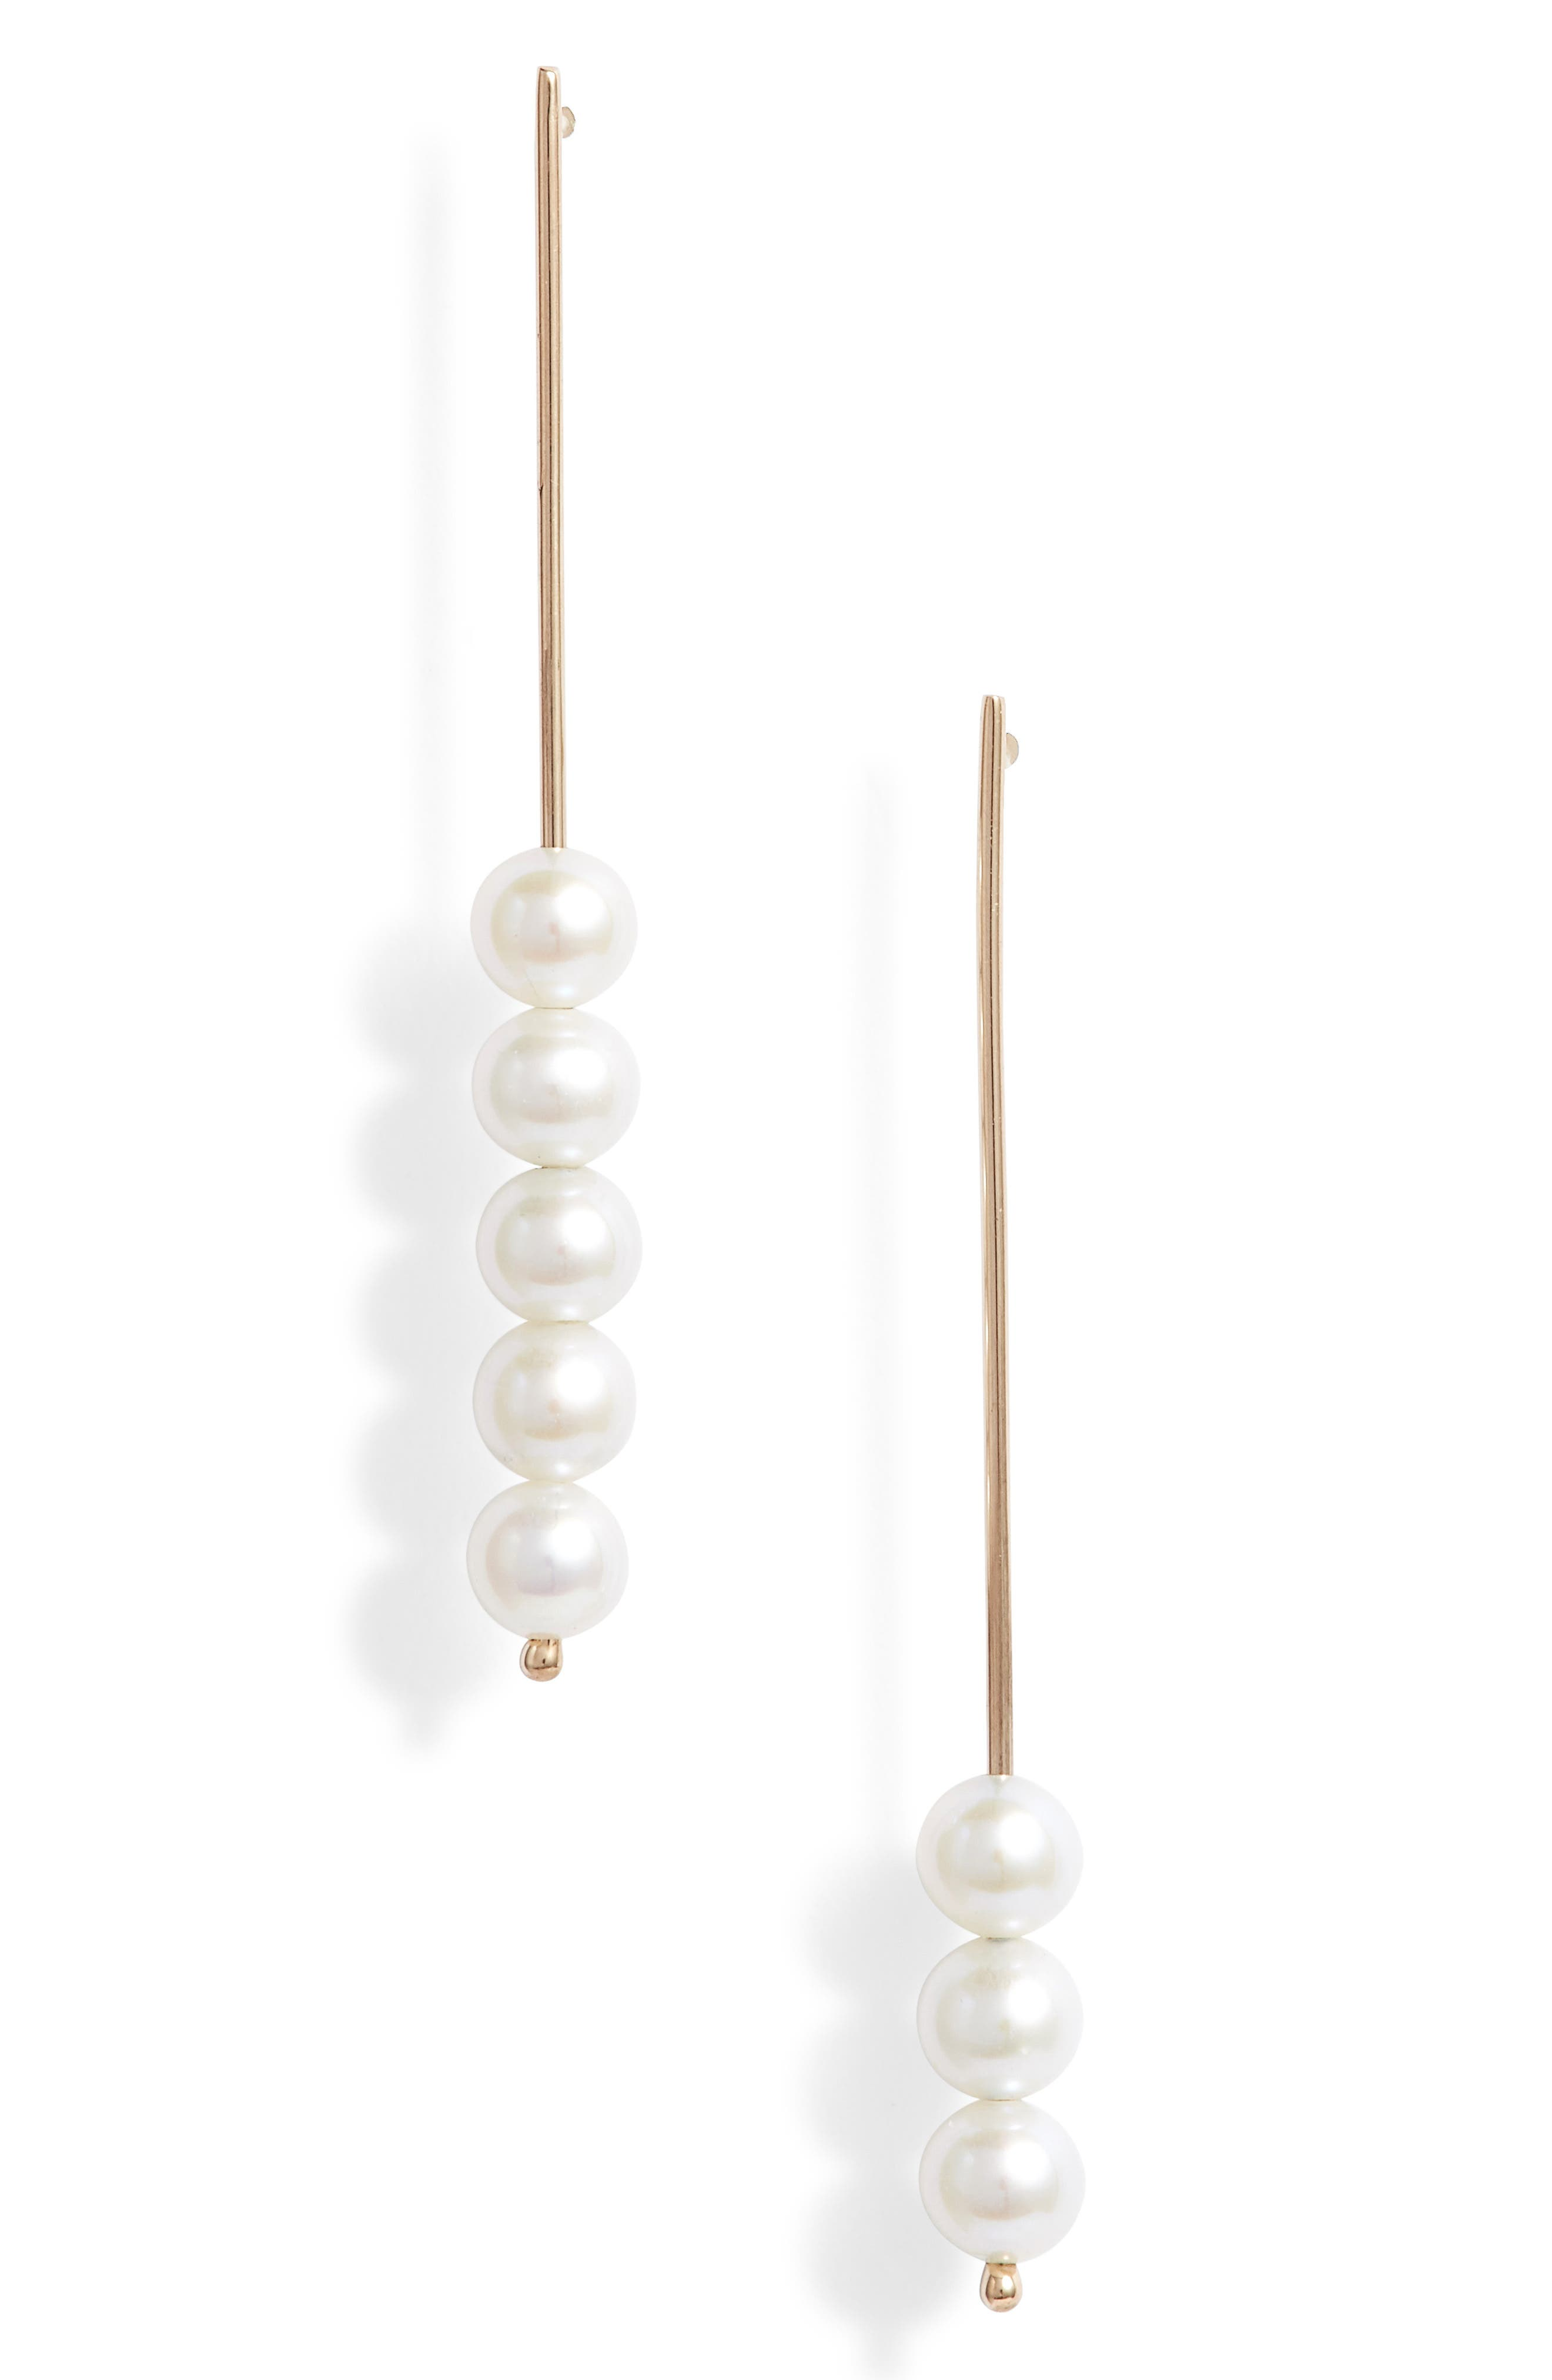 Baby Pearl Stick Pin Linear Drop Mismatch Earrings,                         Main,                         color, Yellow Gold/ White Pearl